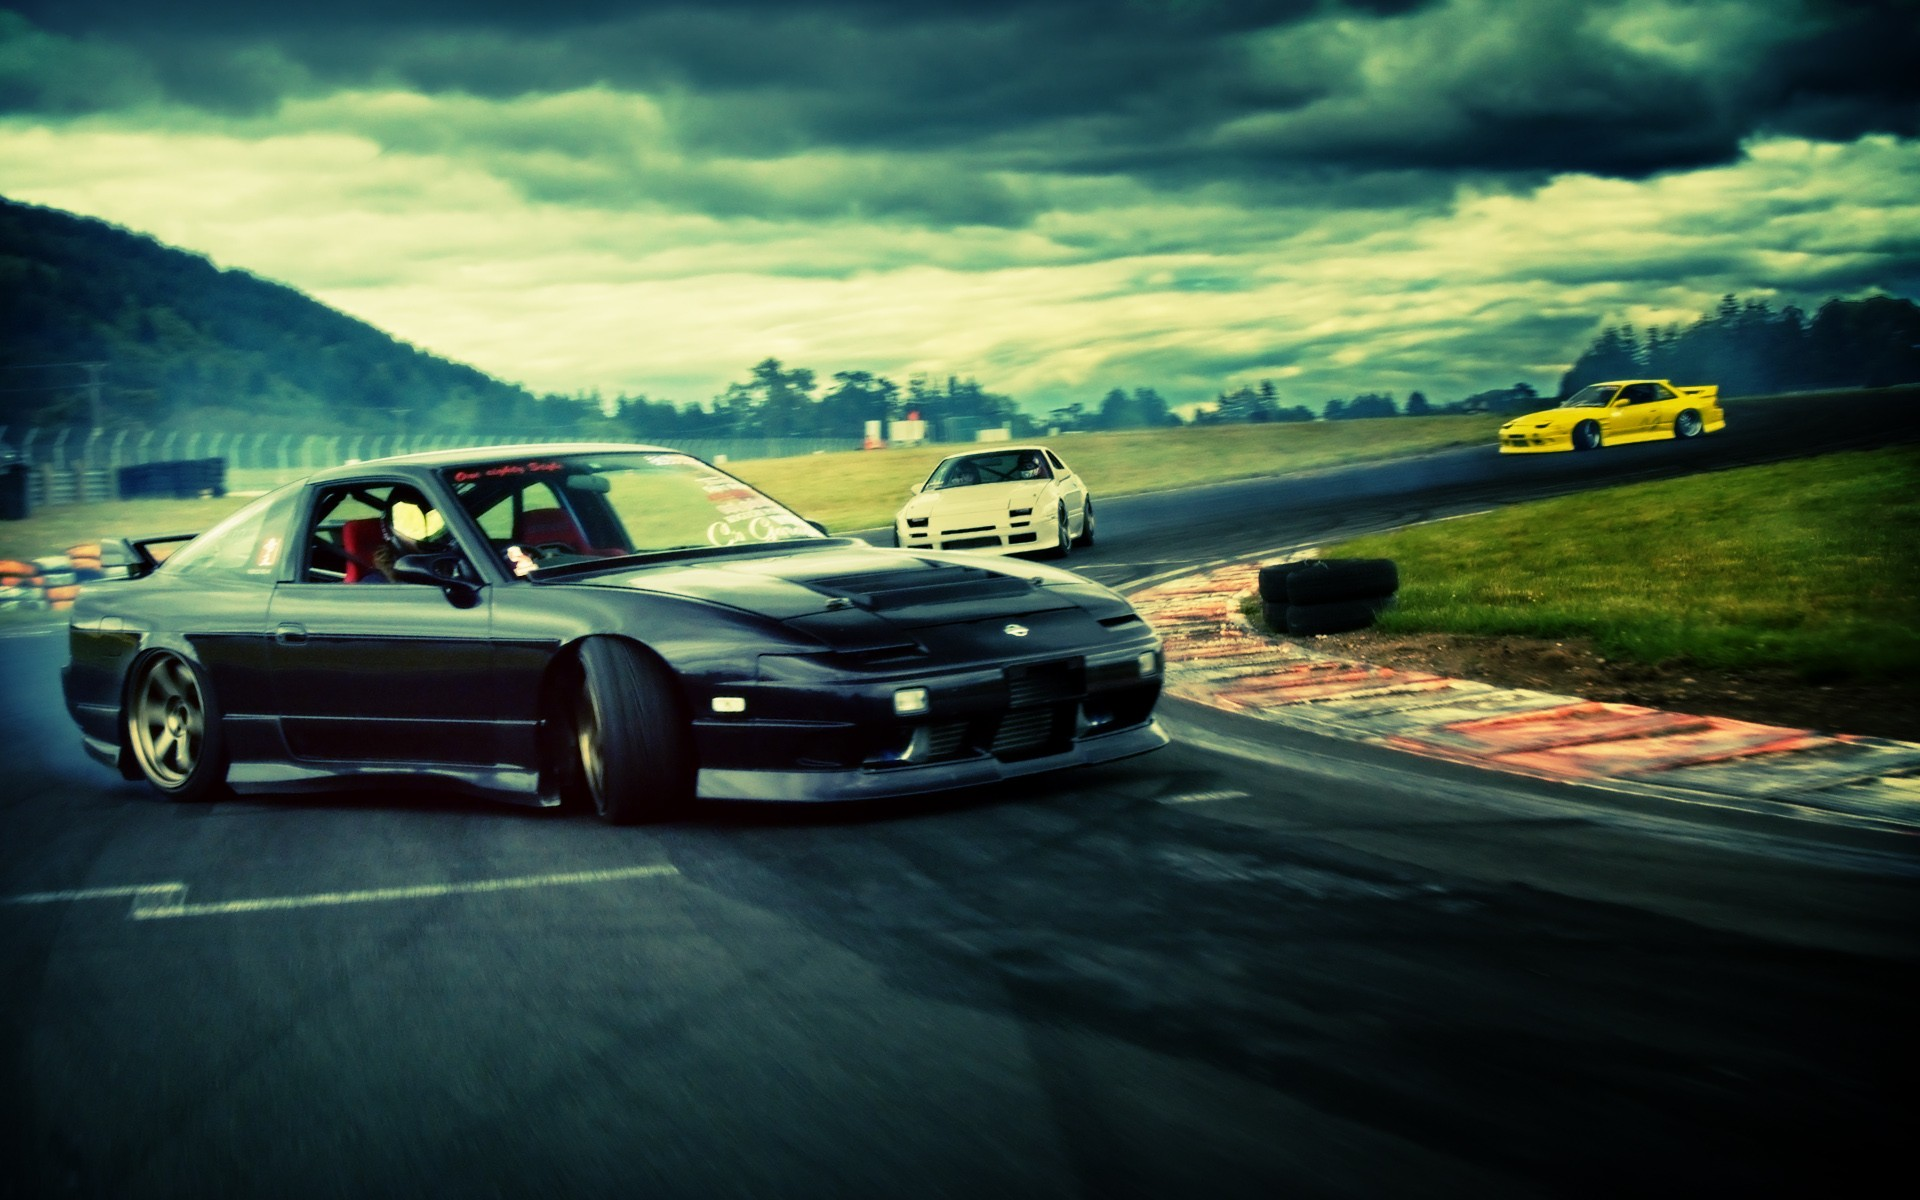 Silvia S13 Jdm Wide #39102 HD Wallpaper Res: 1920x1200 | DesktopAS.com ...